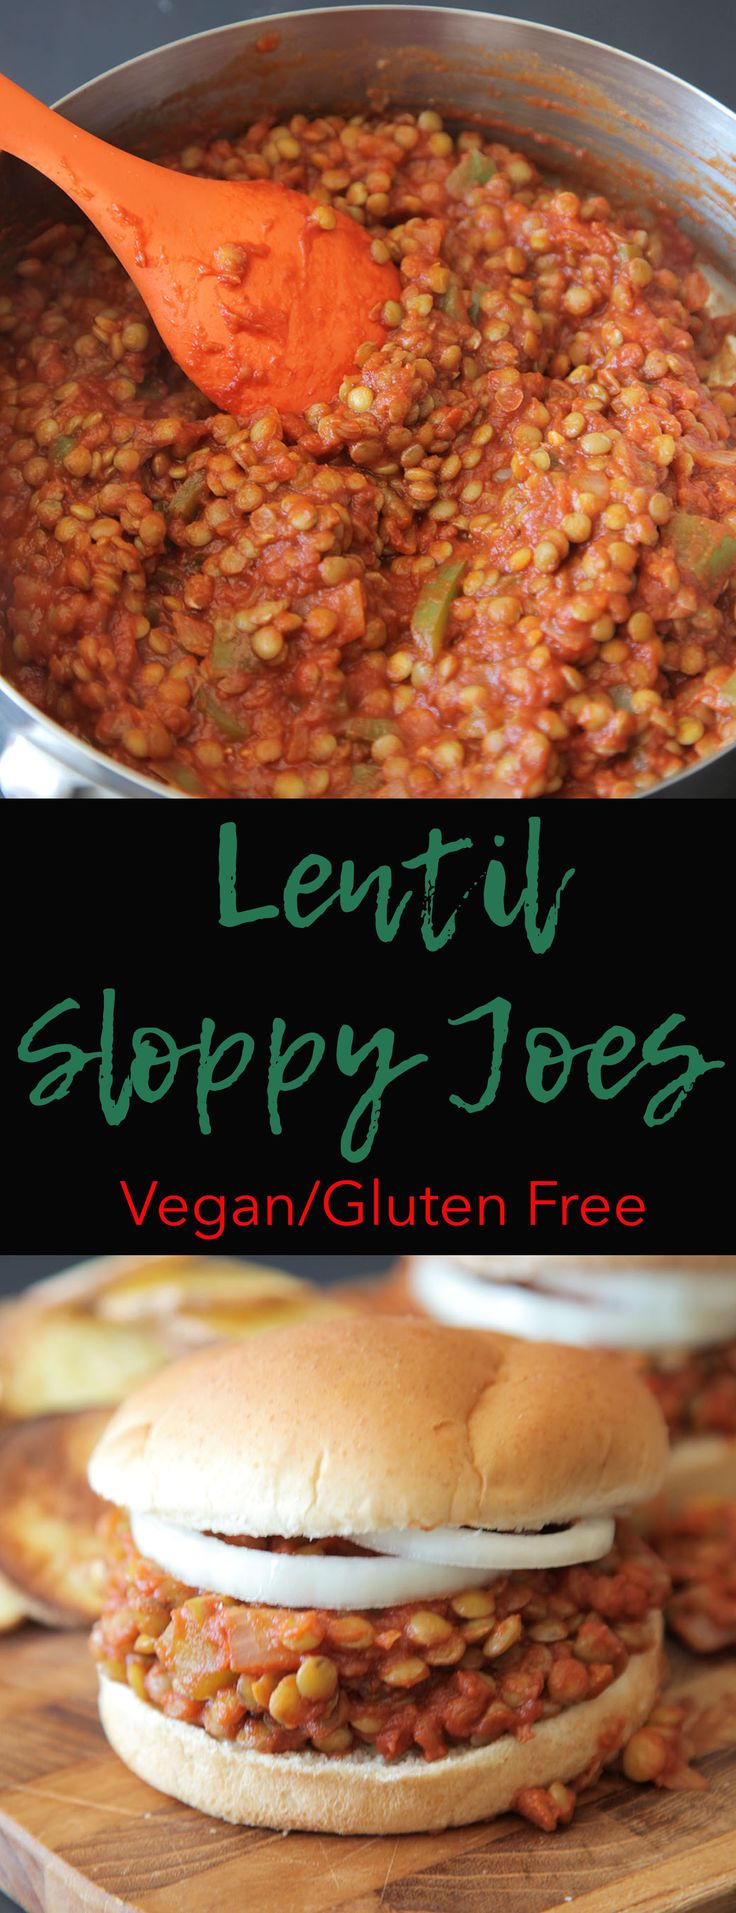 Lentil Sloppy Joes (Vegan + GF) - Modern Little Victories - These vegan sloppy joes are a quick and easy vegan twist on a childhood classic.